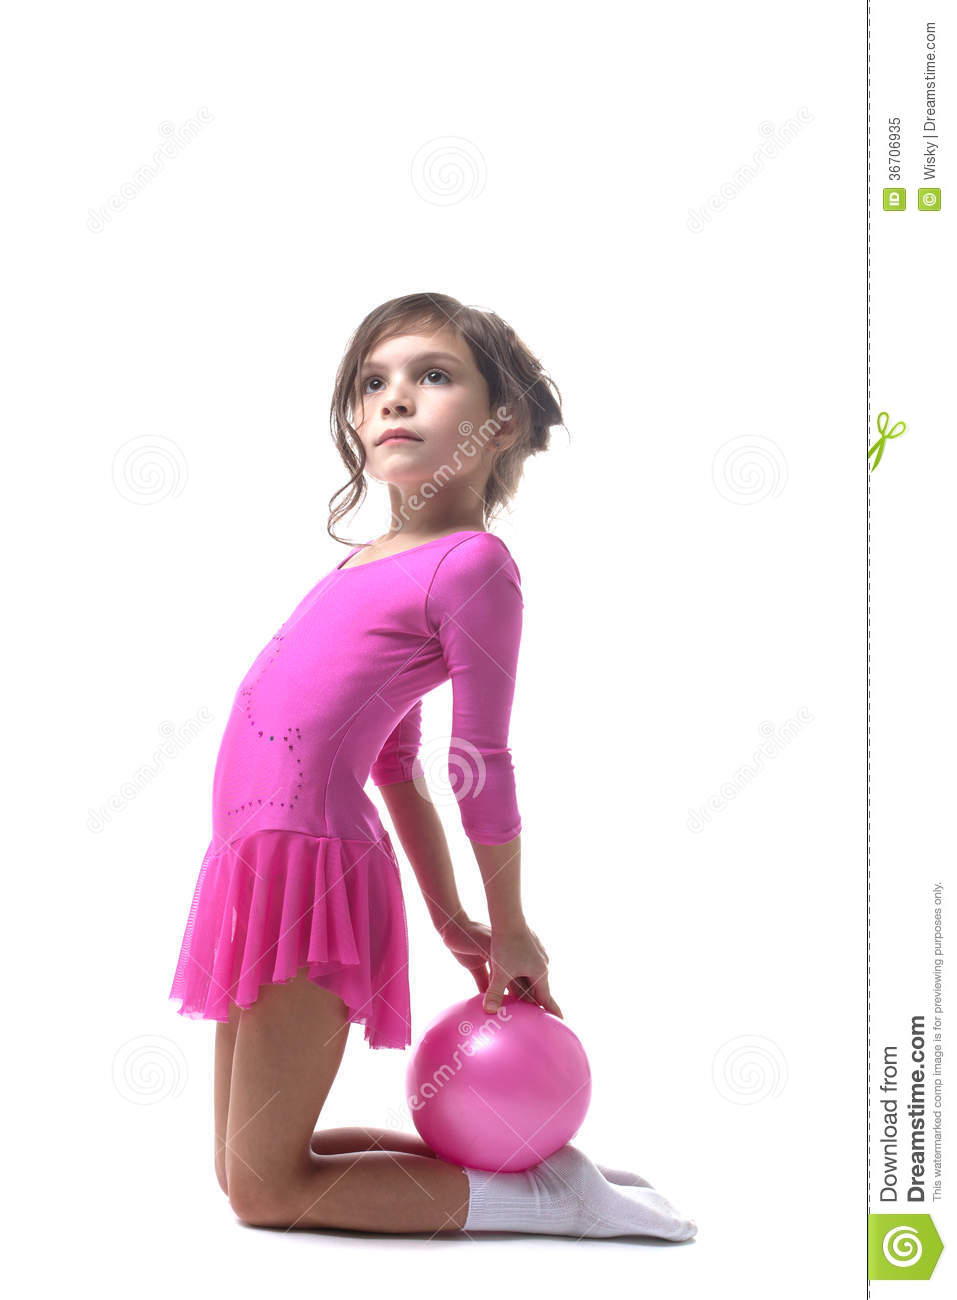 Image Of Cute Little Gymnast Posing With Ball Royalty Free Stock Photo ...